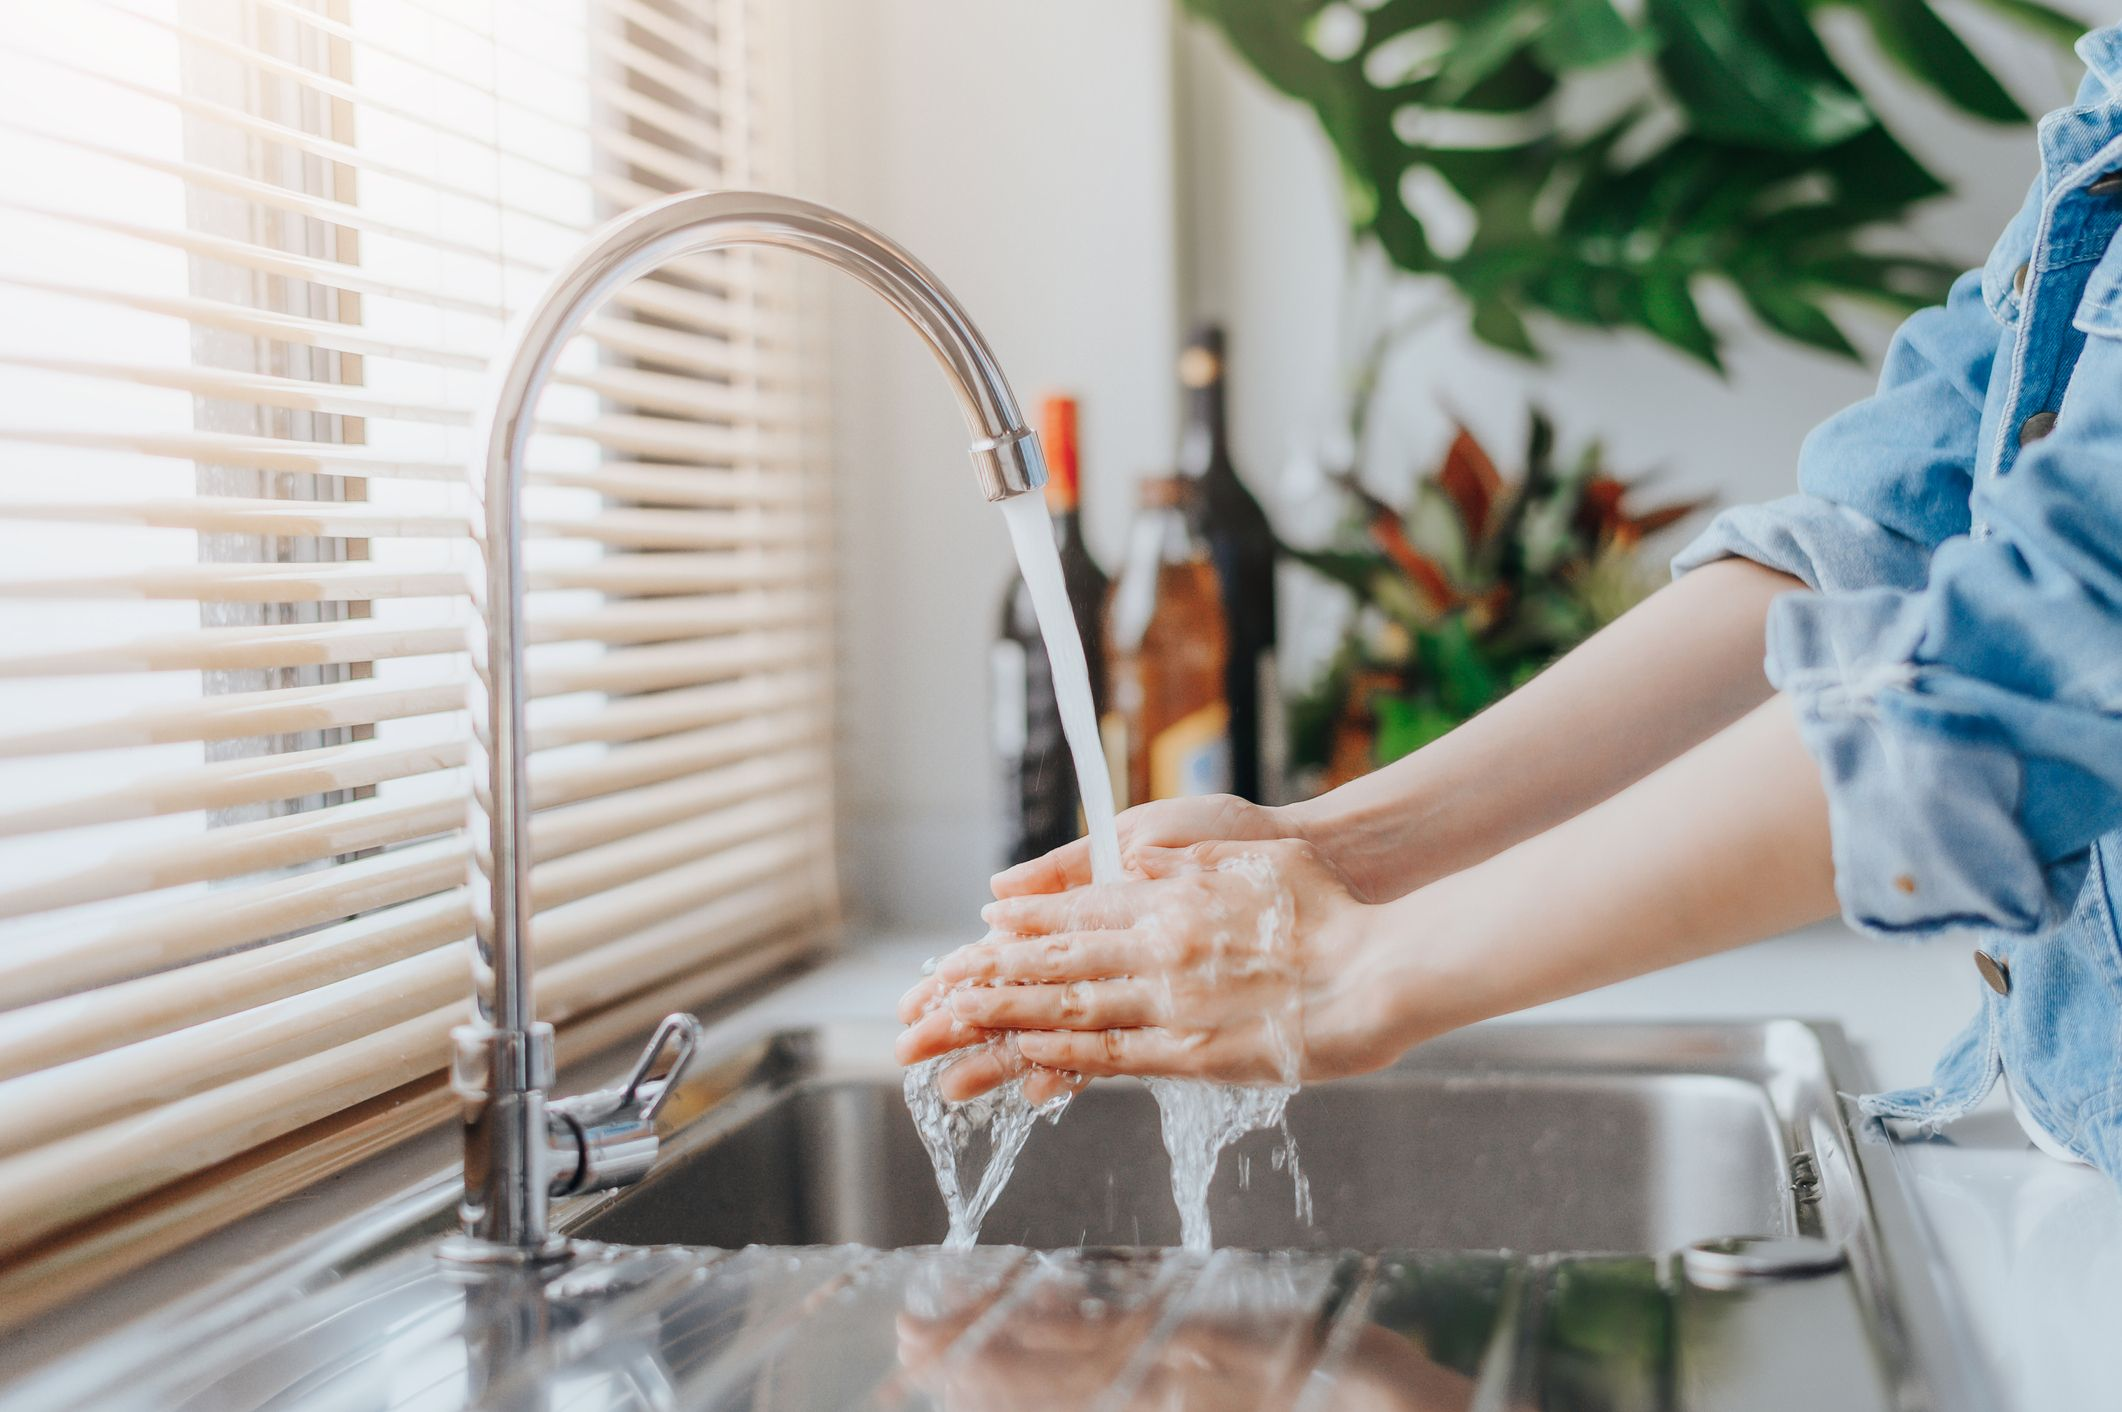 How Long Should You Wash Your Hands? - How to Wash Your Hands